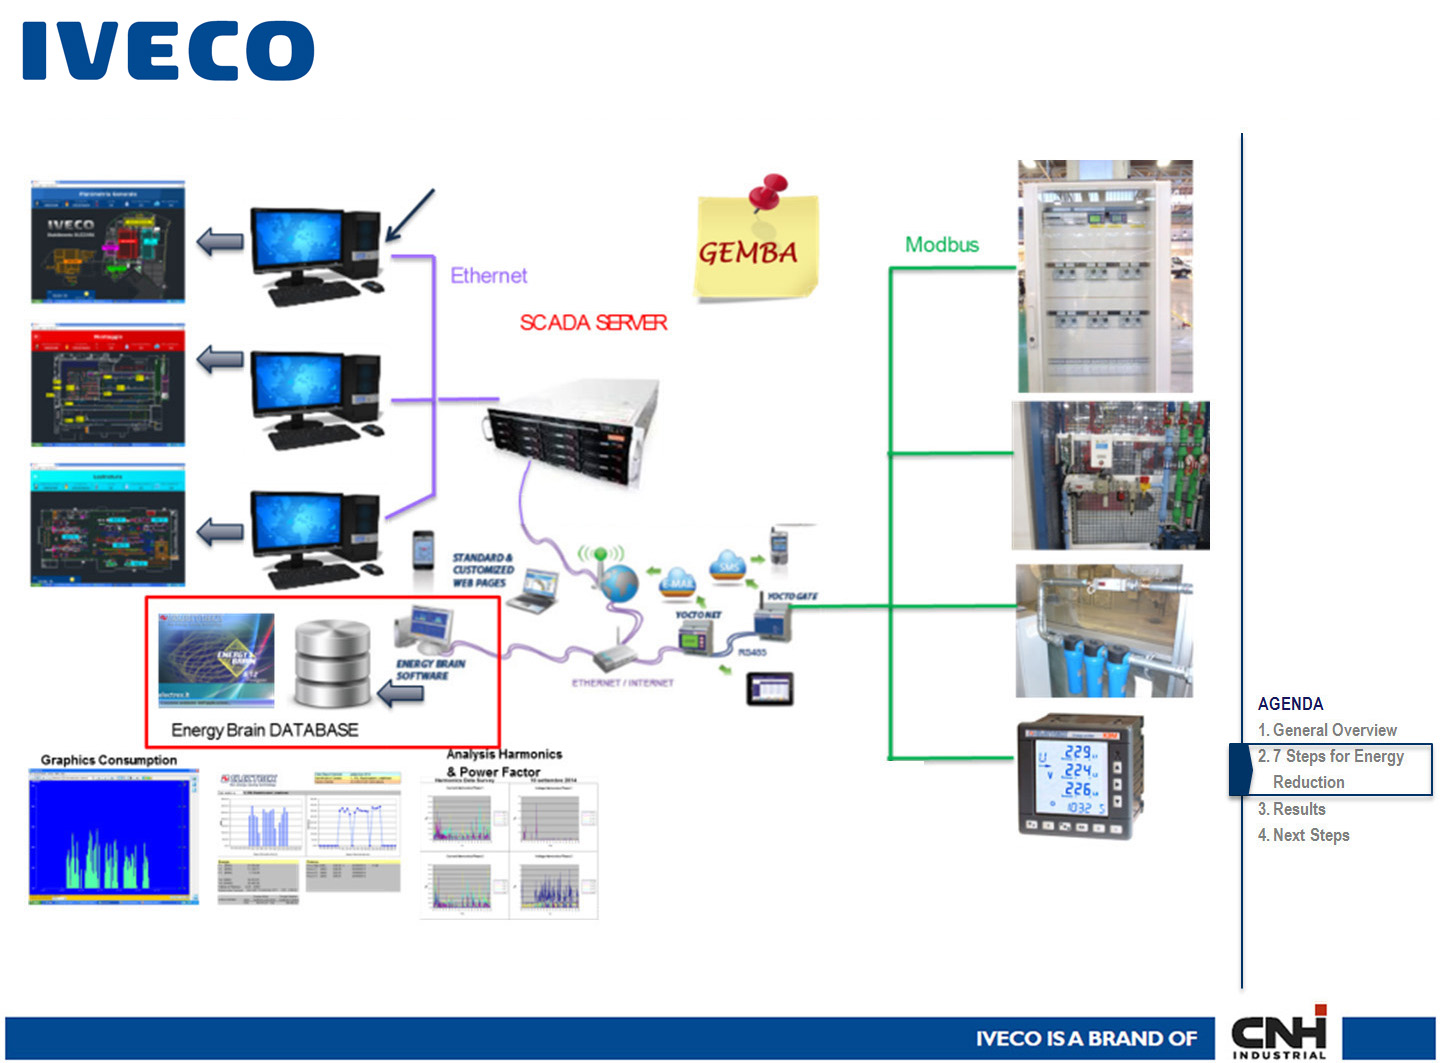 CNH - IVECO: the progressive evolution of the Electrex system for monitoring and management of energy sources, environmental and process parameters